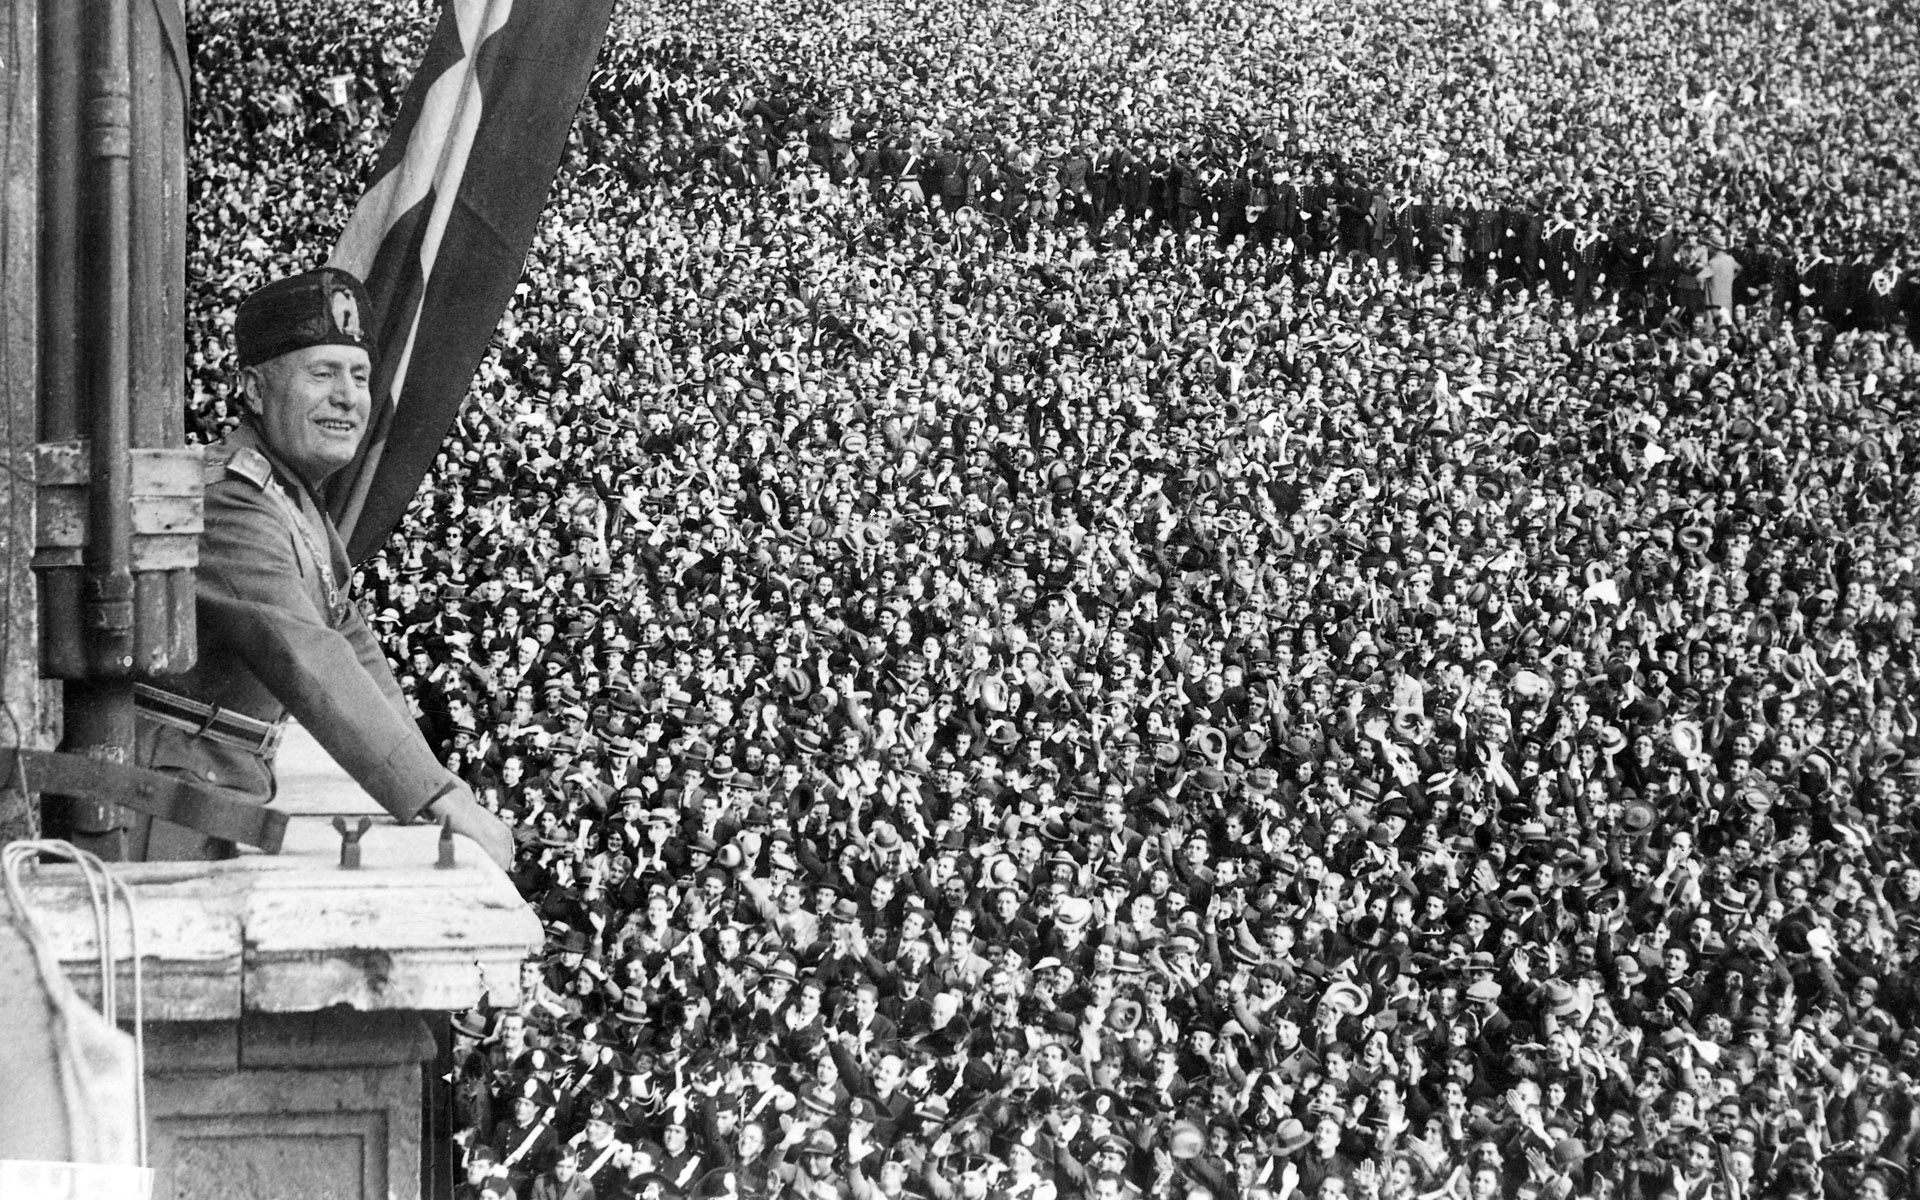 Benito Mussolini, 1934 meeting crowds of supporters, at the height of the fascist government